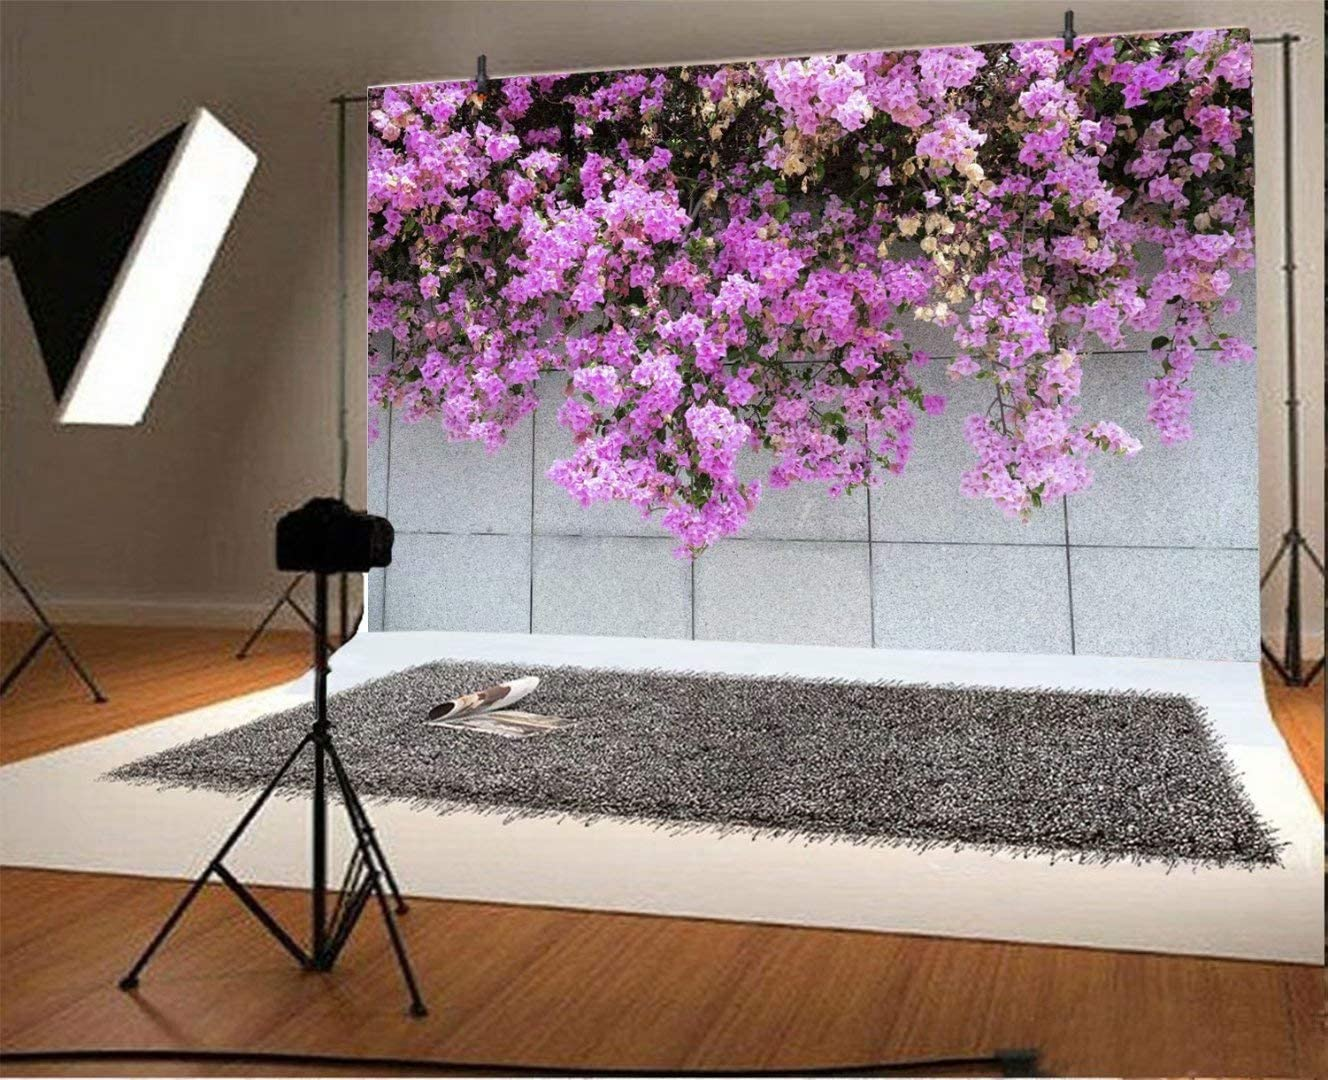 DaShan 6x4ft Polyester Floral Wall Backdrop Wedding Bridal Shower Women Girls Flower Birthday Photography Background Marble Wall Newborn Baby Decor Valentines Day Mother Girl Flower Wall Photo Props